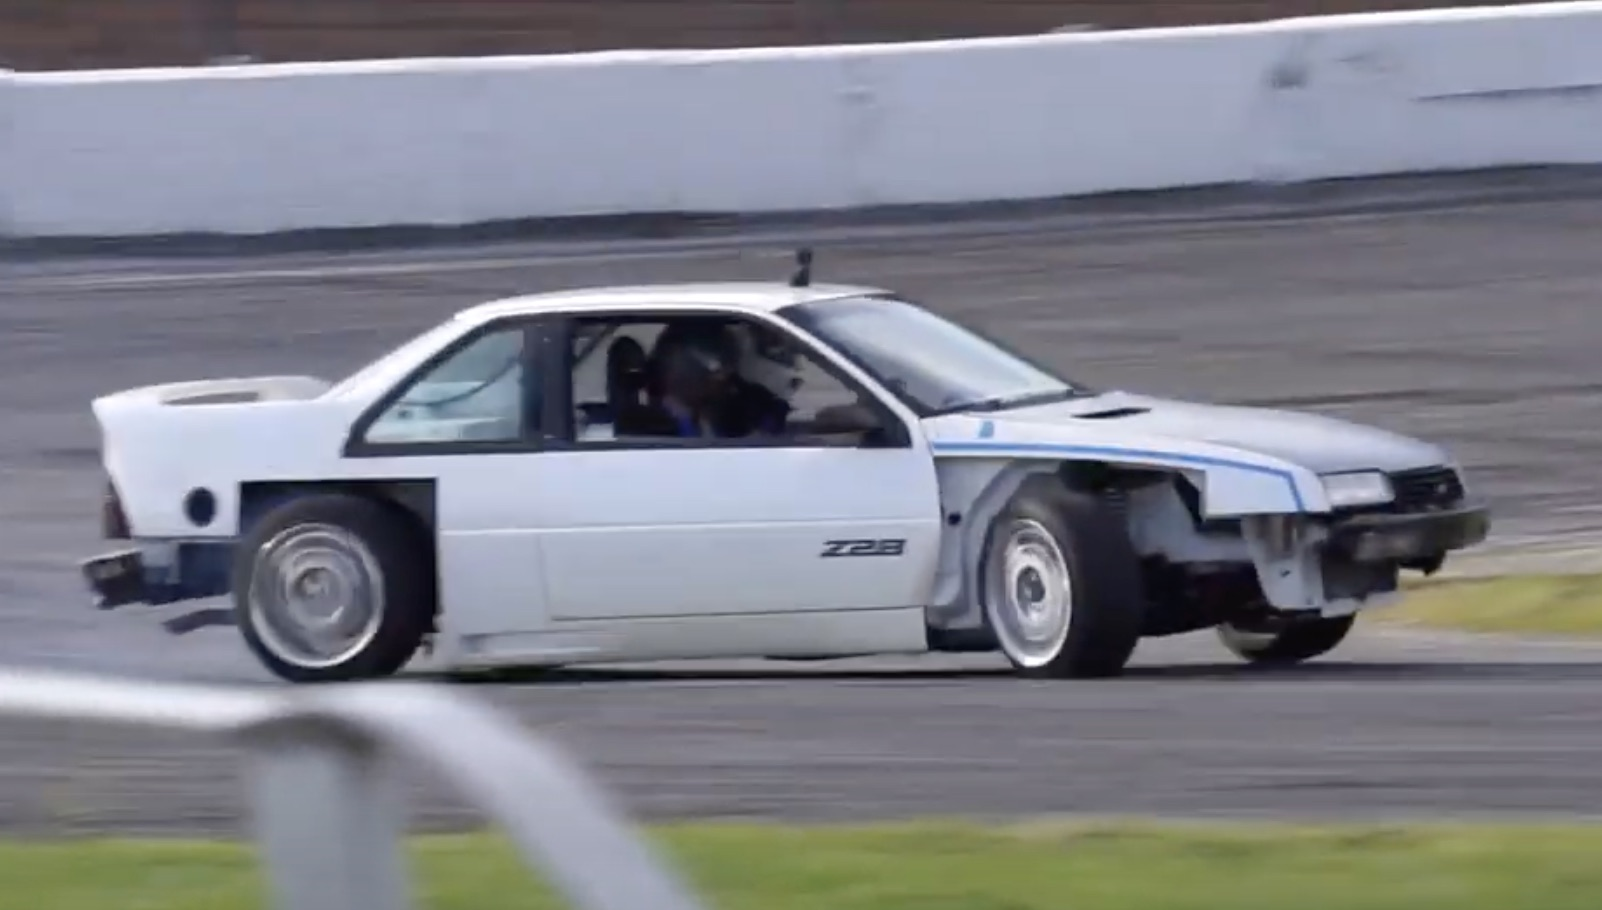 Drift Beretta: How Chevy's Front-Drive Two-Door Got Blended With A Camaro To Create This Monster!